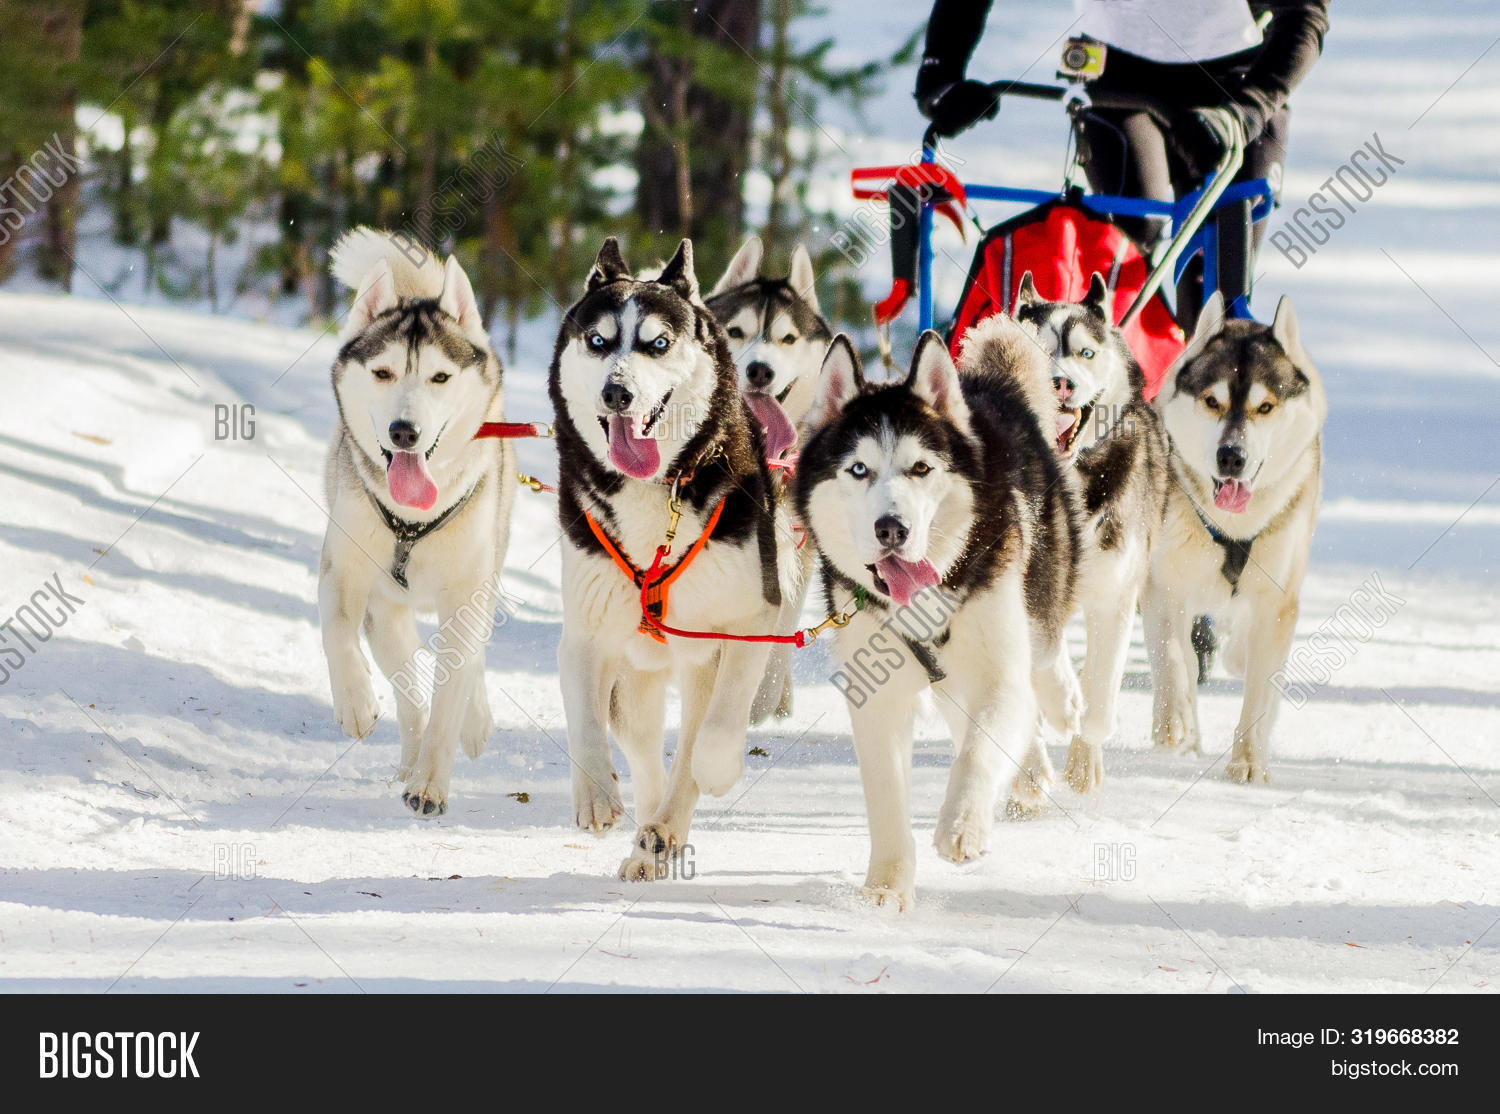 action,active,activity,adventure,animal,beautiful,canine,challenge,championship,cold,competition,cup,cute,day,dog,dog-sled,dogsled,dogsledding,drive,eyes,face,fast,forest,friend,fur,harness,husky,meeting,motion,mouth,musher,pet,polar,purebred,race,run,running,siberian,sled,sledge,sleigh,snow,sport,team,teamwork,tongue,training,white,win,winter